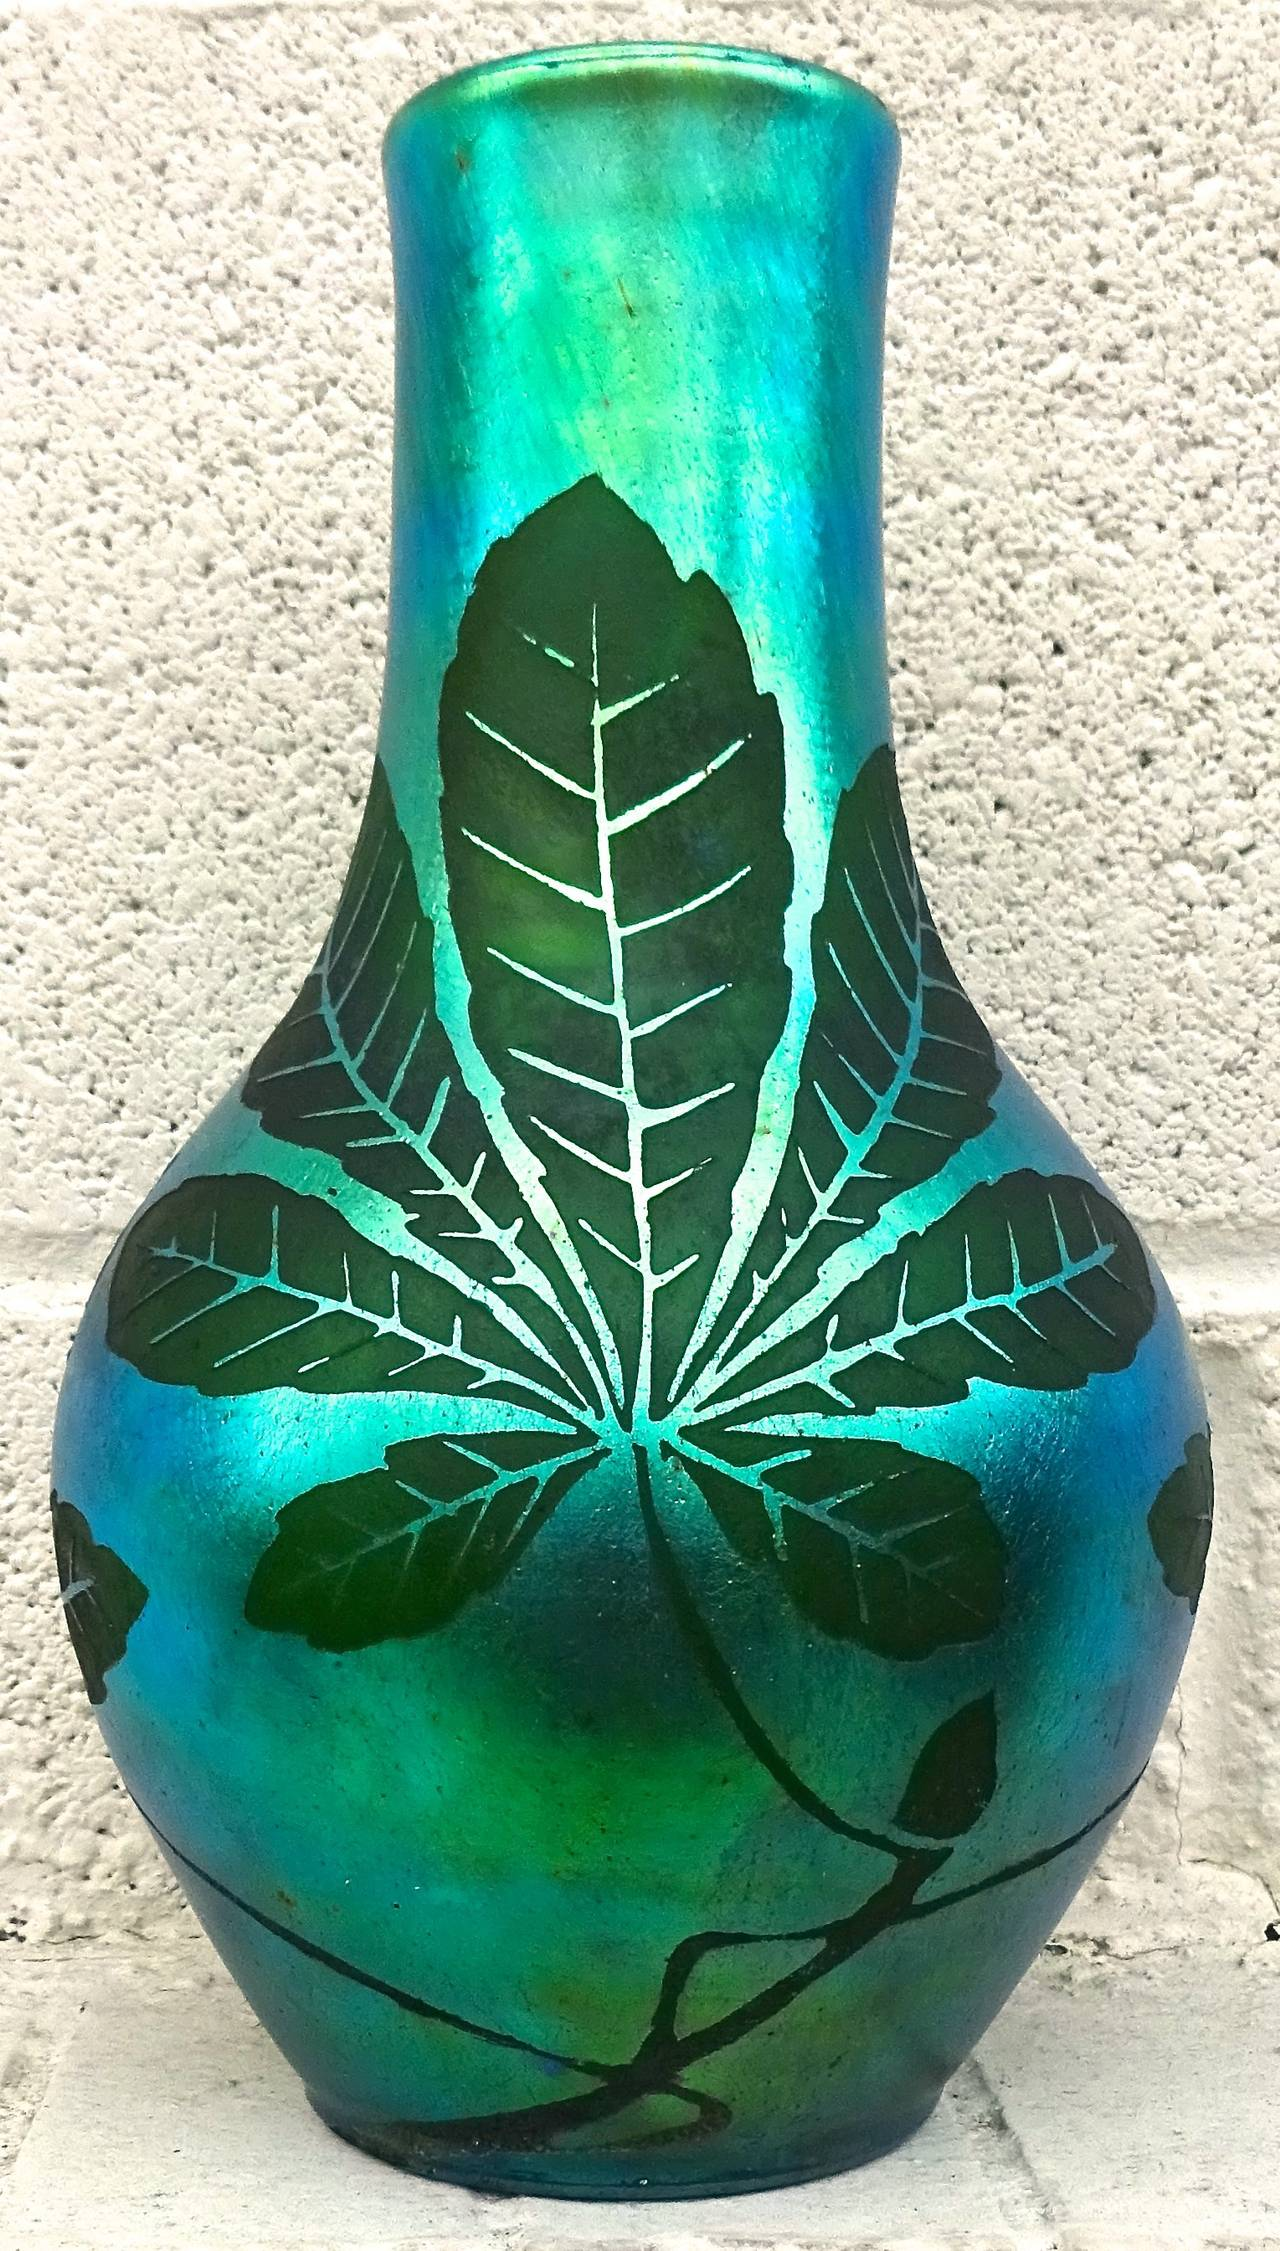 French Deco Iridescent Acid-Etched Art Glass Vase, 1920s For Sale 1